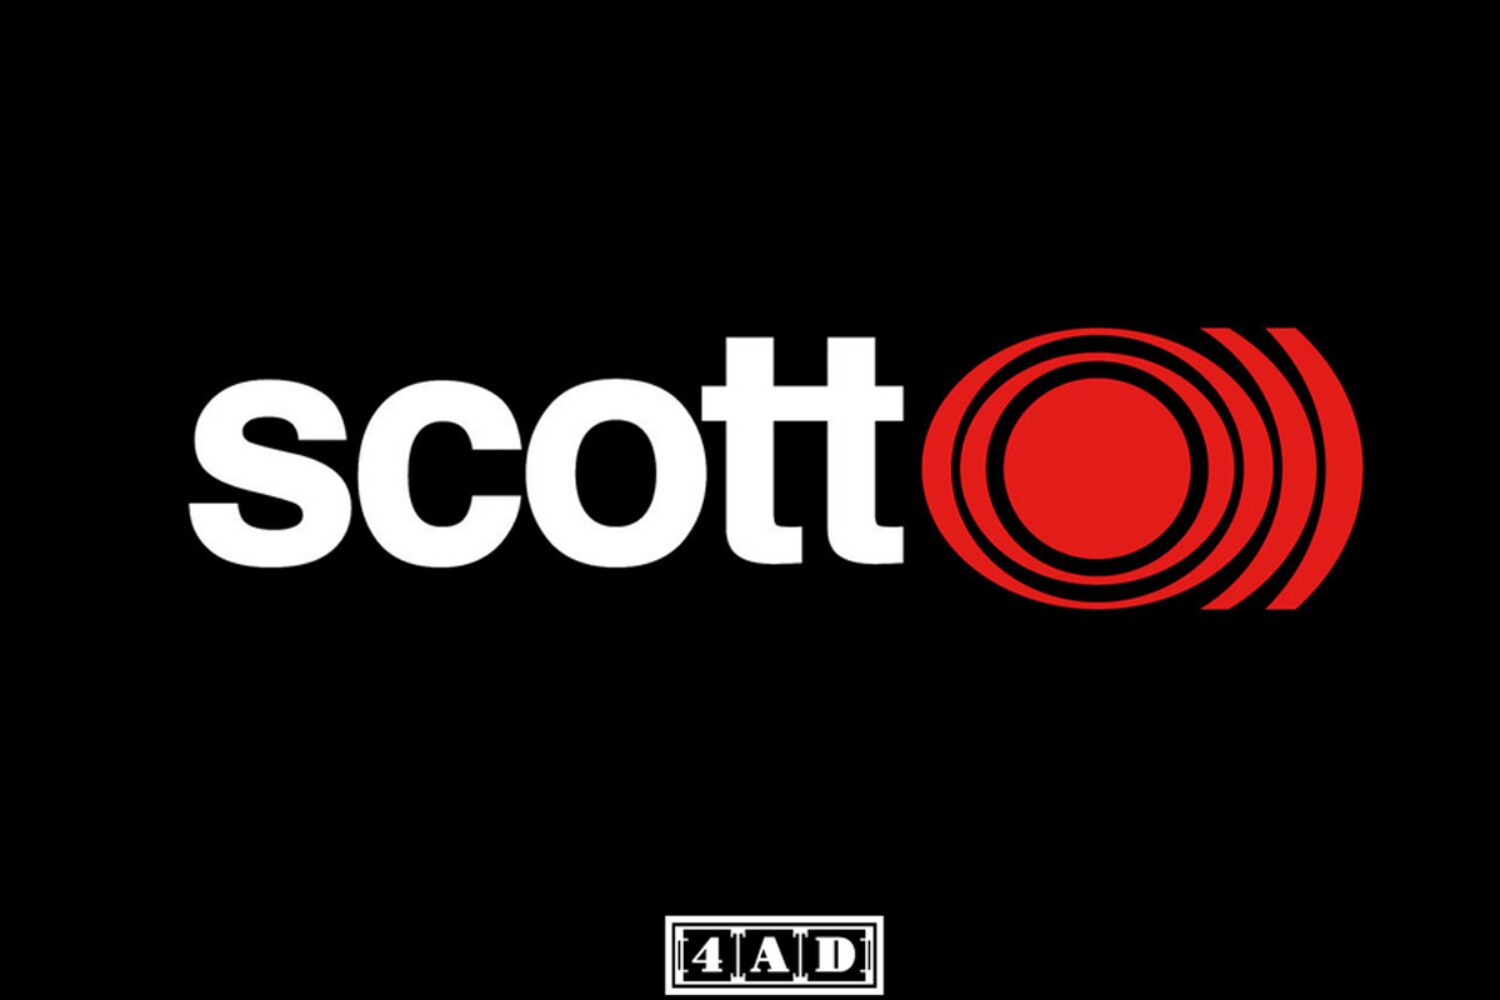 Scott Walker and Sunn O))) are working on an album together